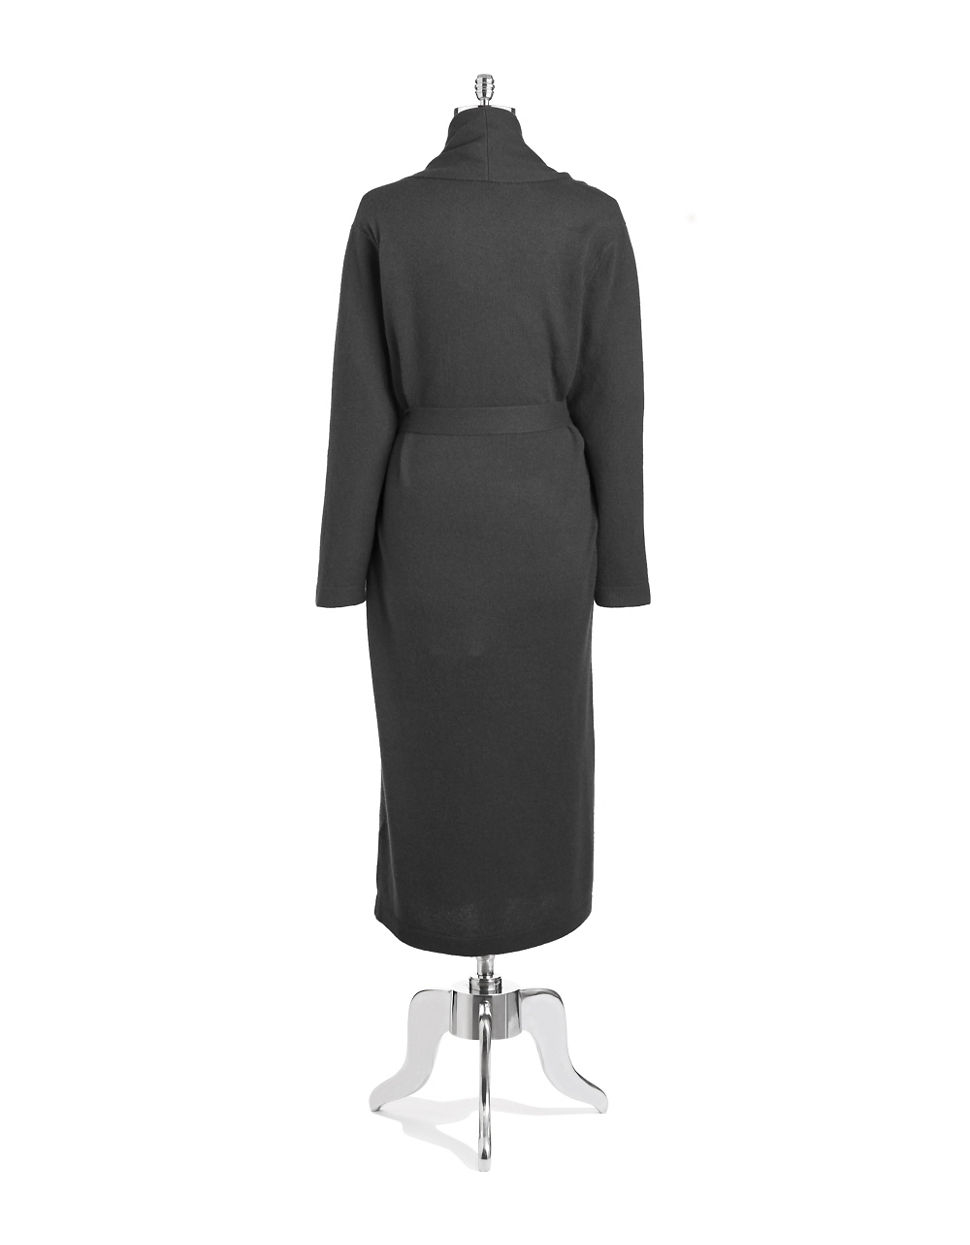 733a5f0175a31 Lord + Taylor Cashmere Long Robe in Gray - Lyst